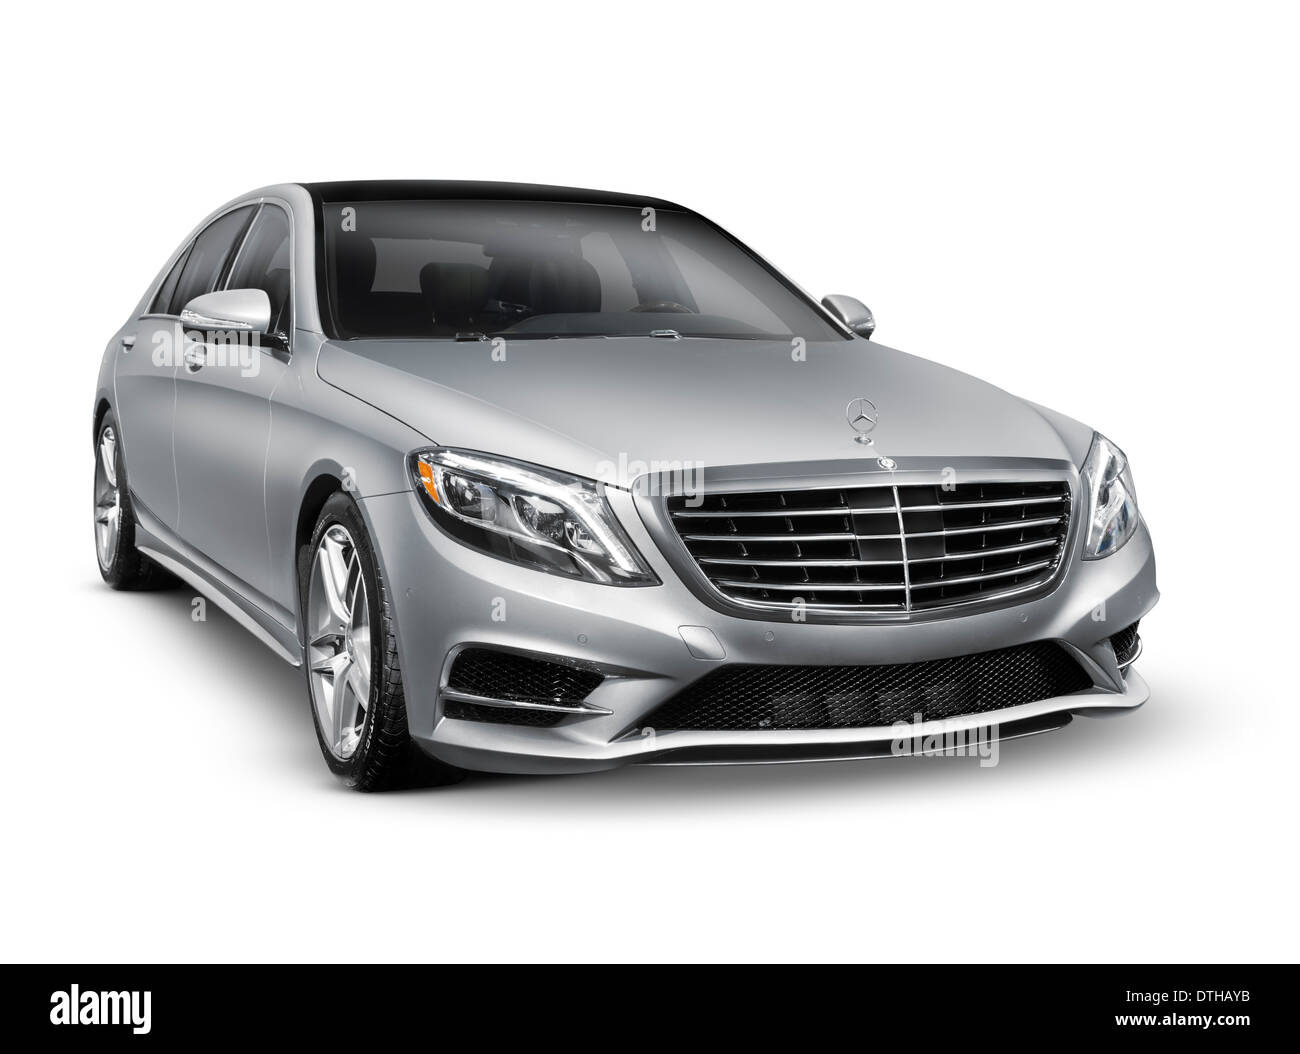 2014 mercedes benz s550 s class luxury sedan isolated car for Mercedes benz luxury truck